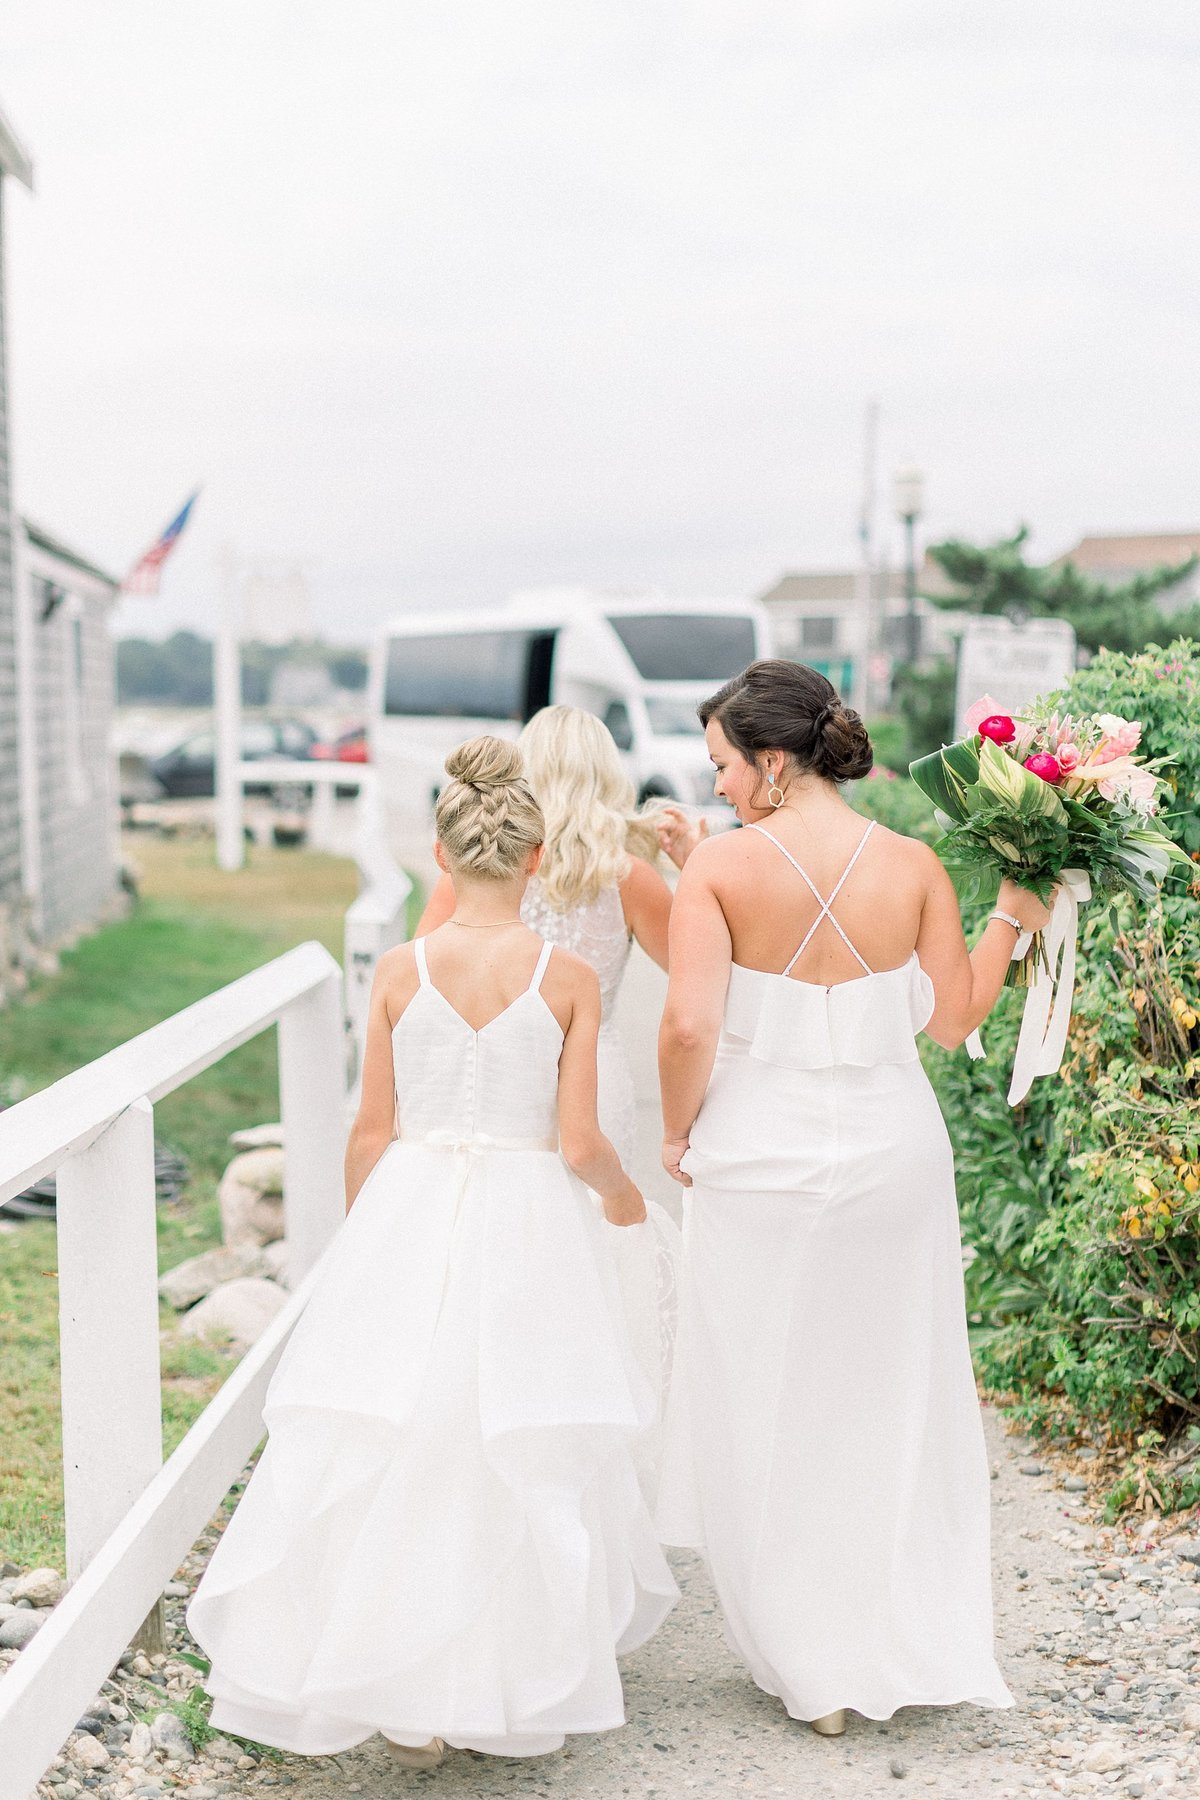 Scituate MA Greenhouse Wedding Photos By Halie-First Look-78